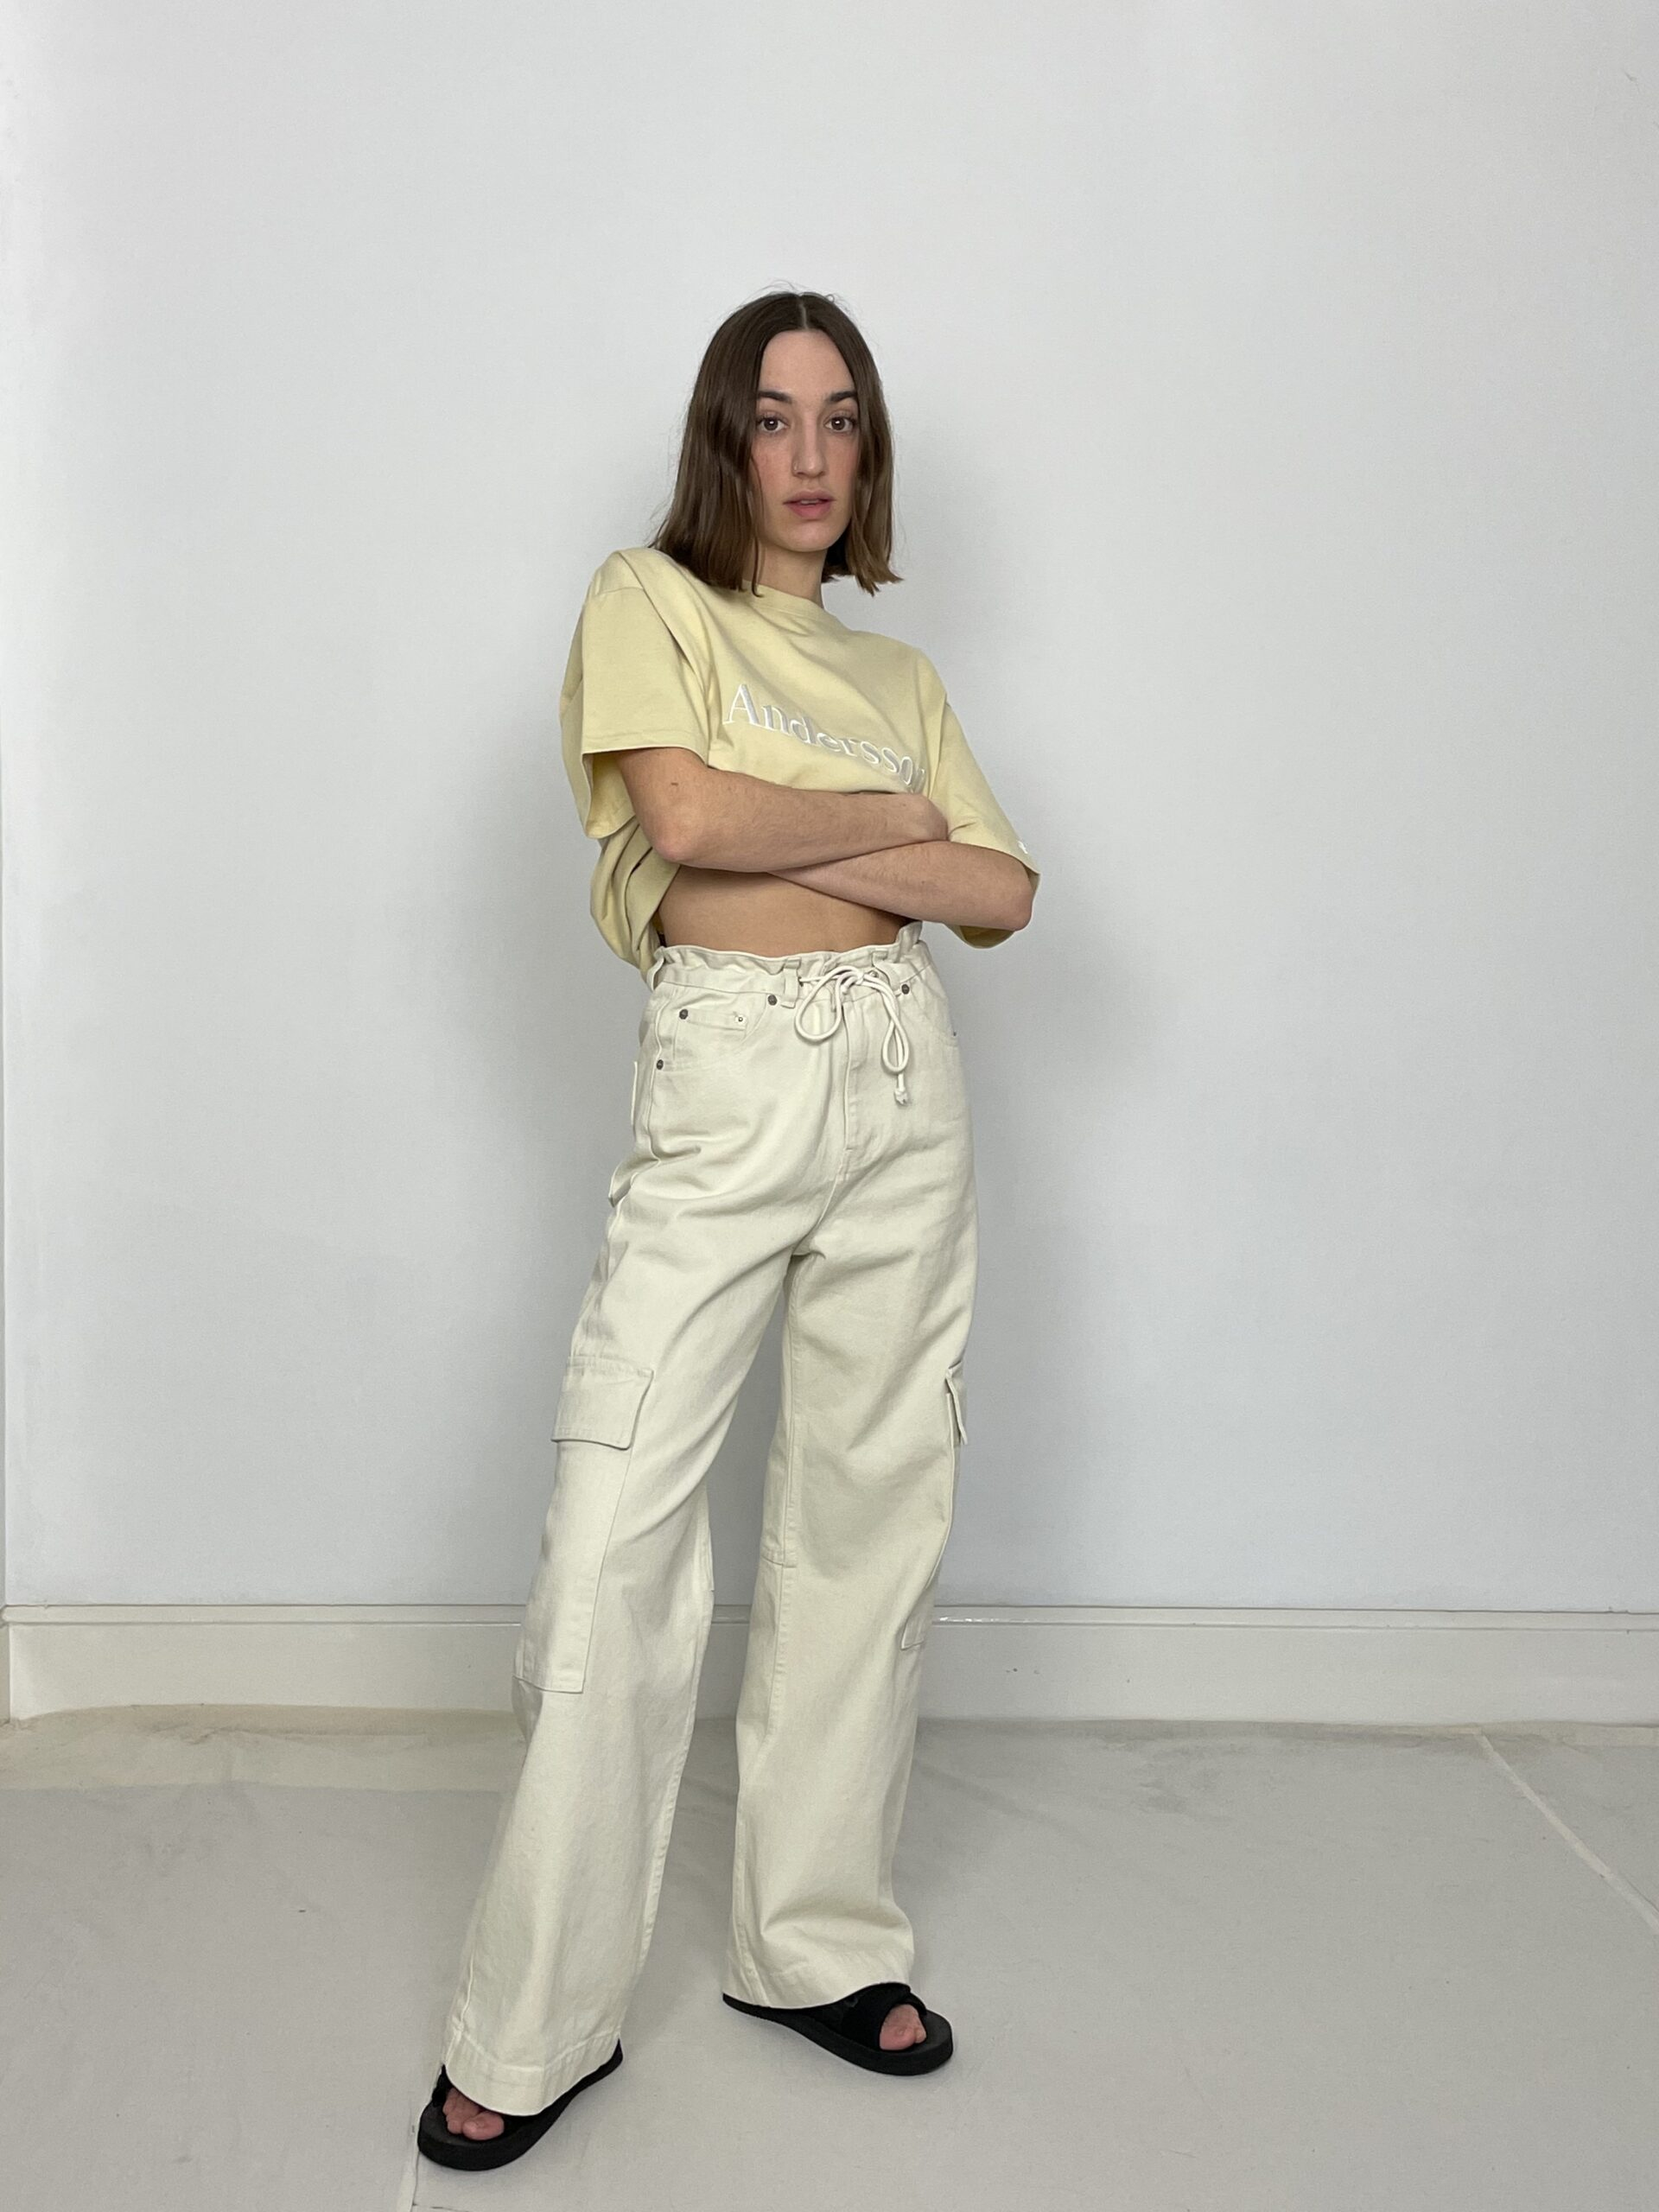 Are You cream cargo pants